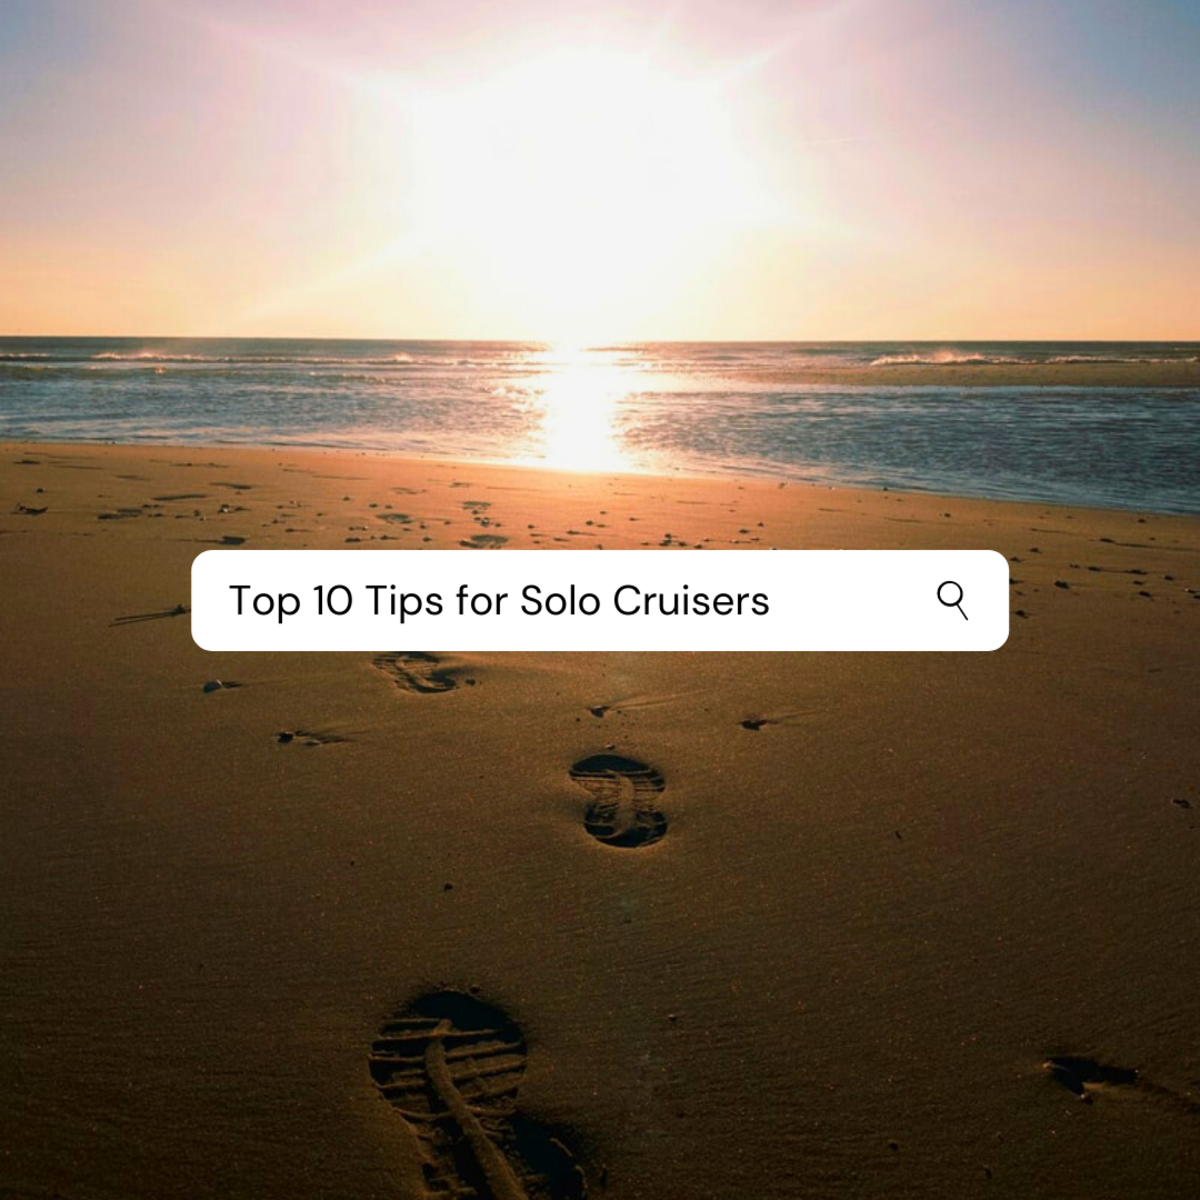 Top 10 Tips for Solo Cruisers